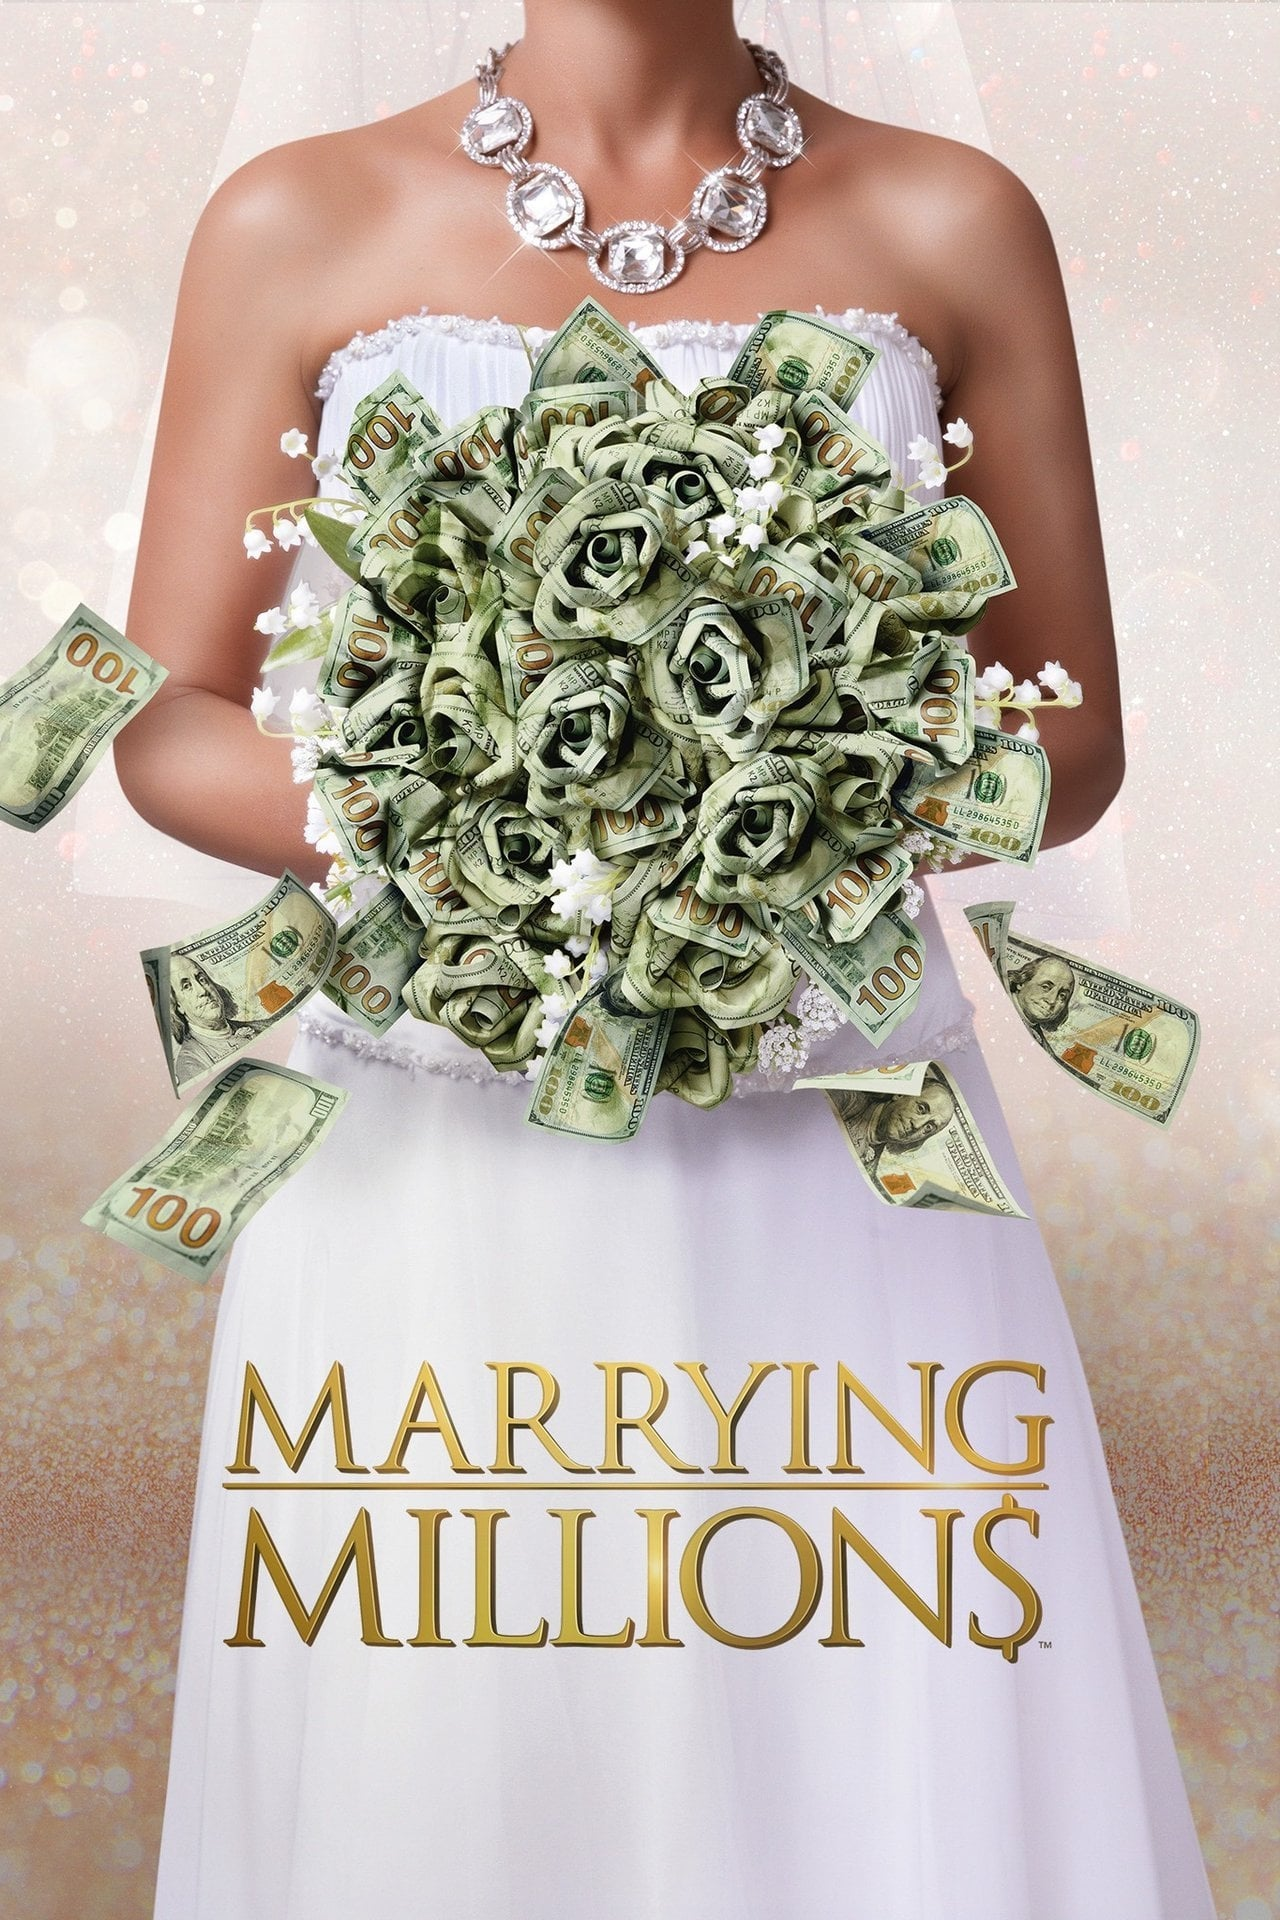 Marrying Millions (2019)